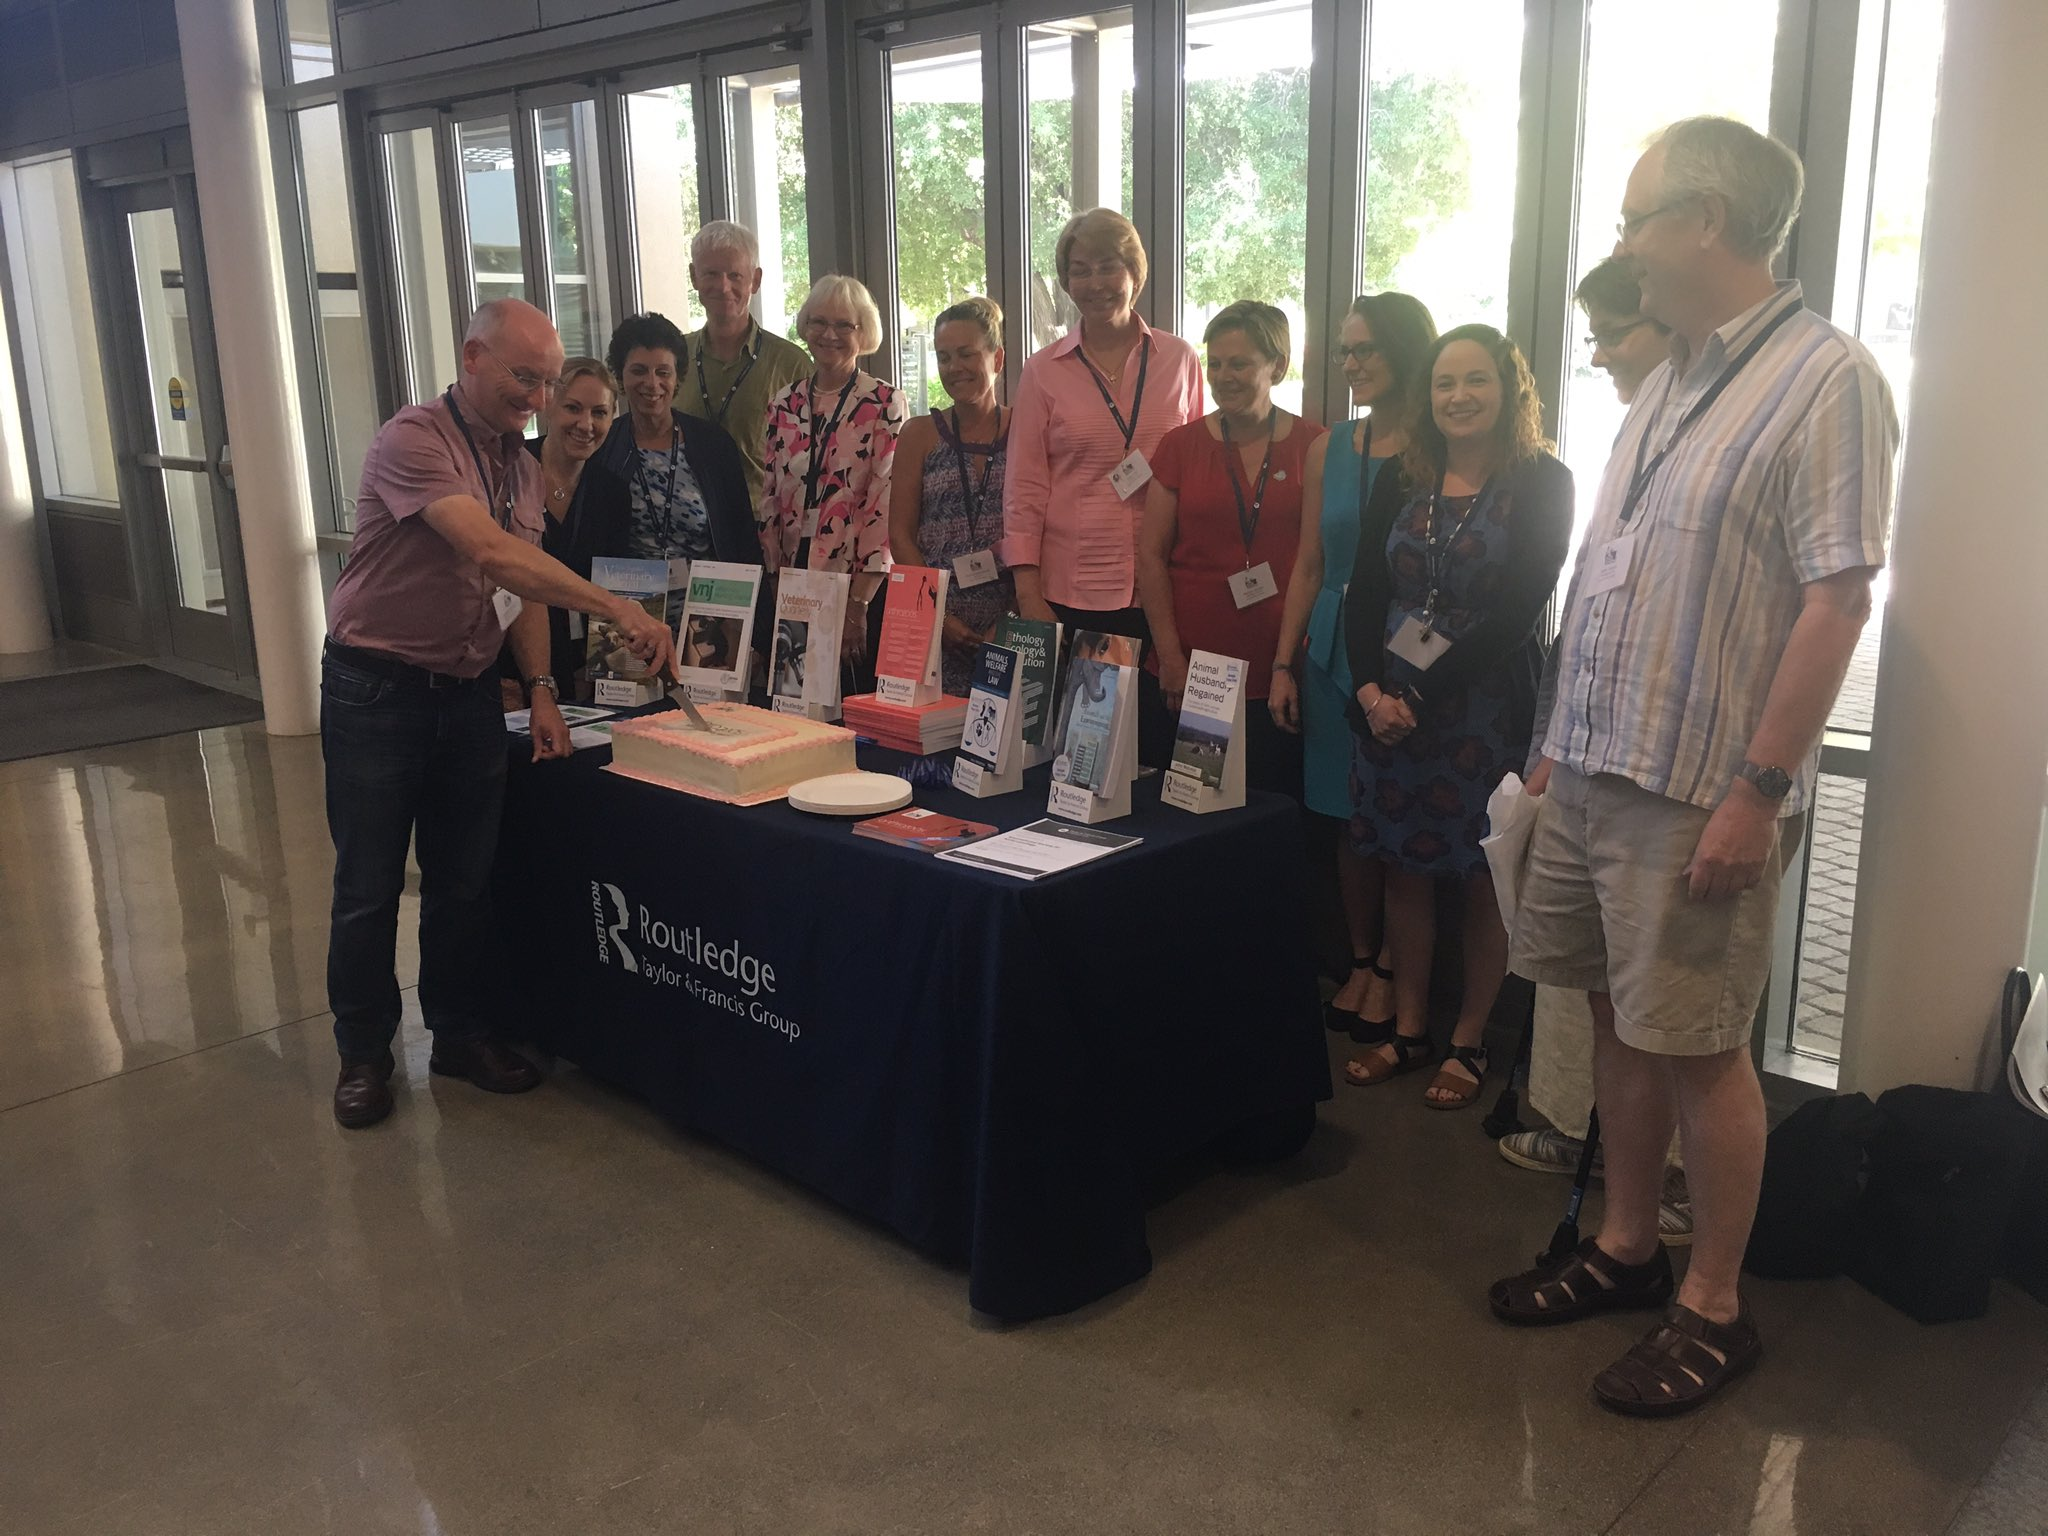 #isaz2017 Come join us! We are cutting the cake! https://t.co/bNtfGRAvzy